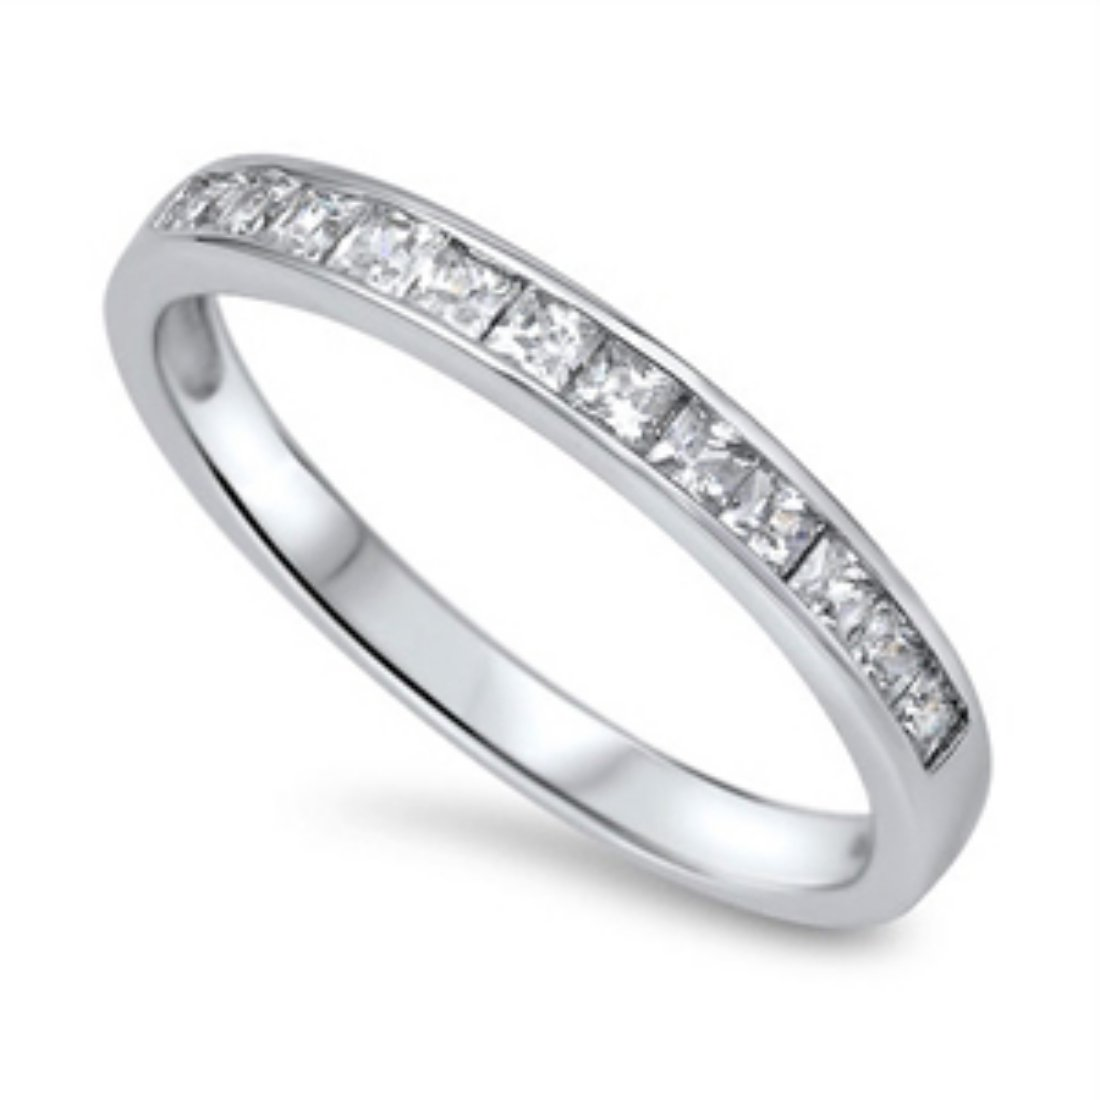 Half Eternity Band Ring Wedding Engagement Princess Cut Square Invisible Cubic Zirconia 925 Sterling Silver 5-12